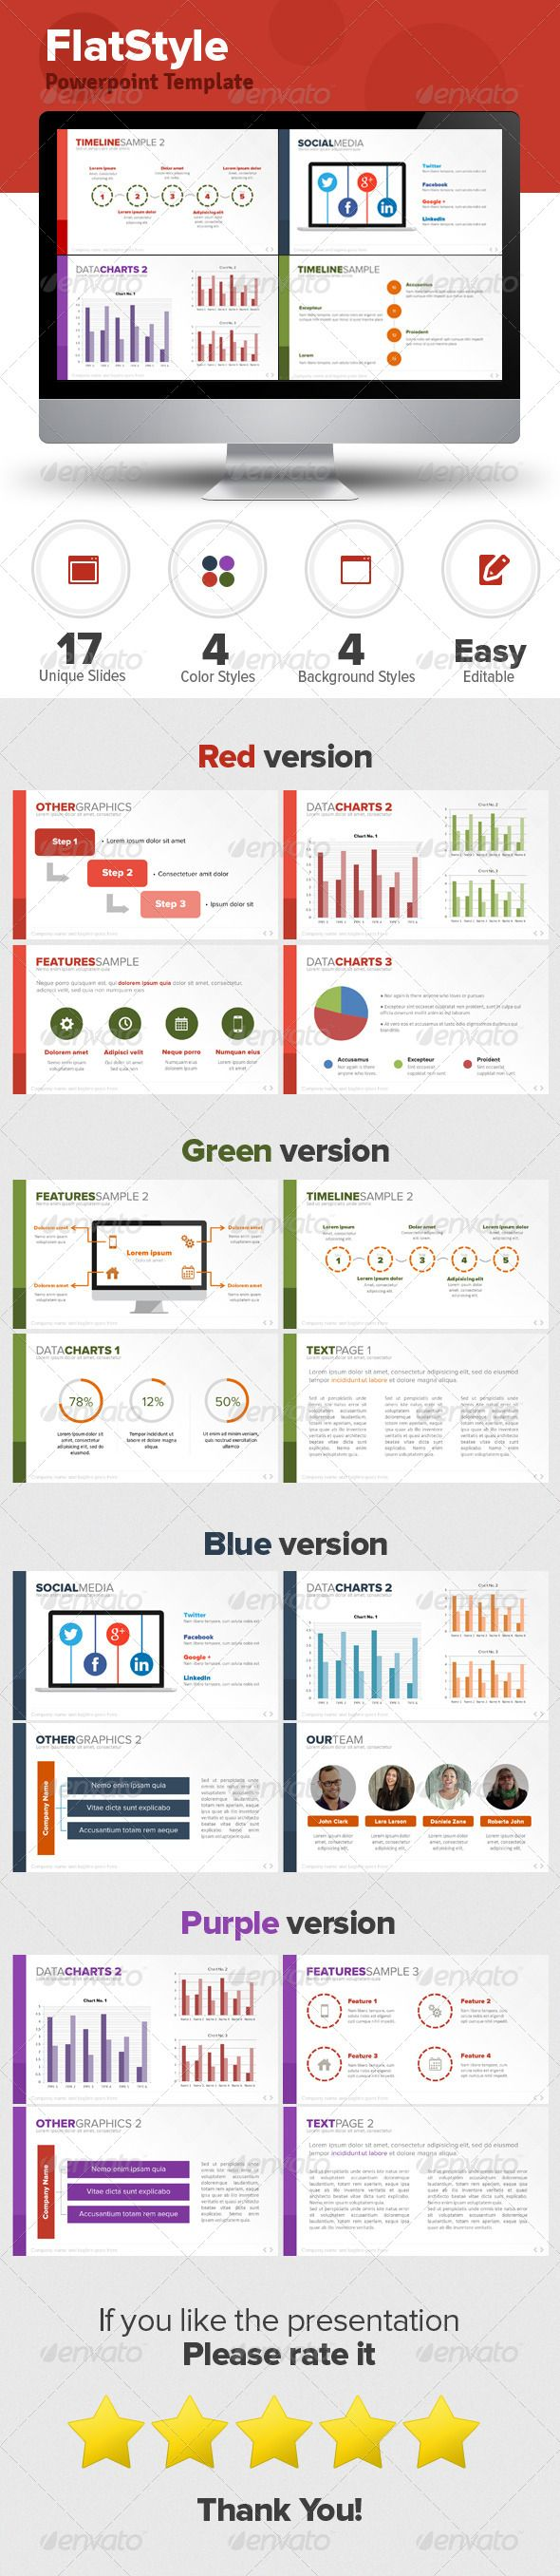 Flat Style Powerpoint Template : Check out this great #graphicriver item 'Flat Style Powerpoint Template' http://graphicriver.net/item/flat-style-powerpoint-template/5717997?ref=25EGY